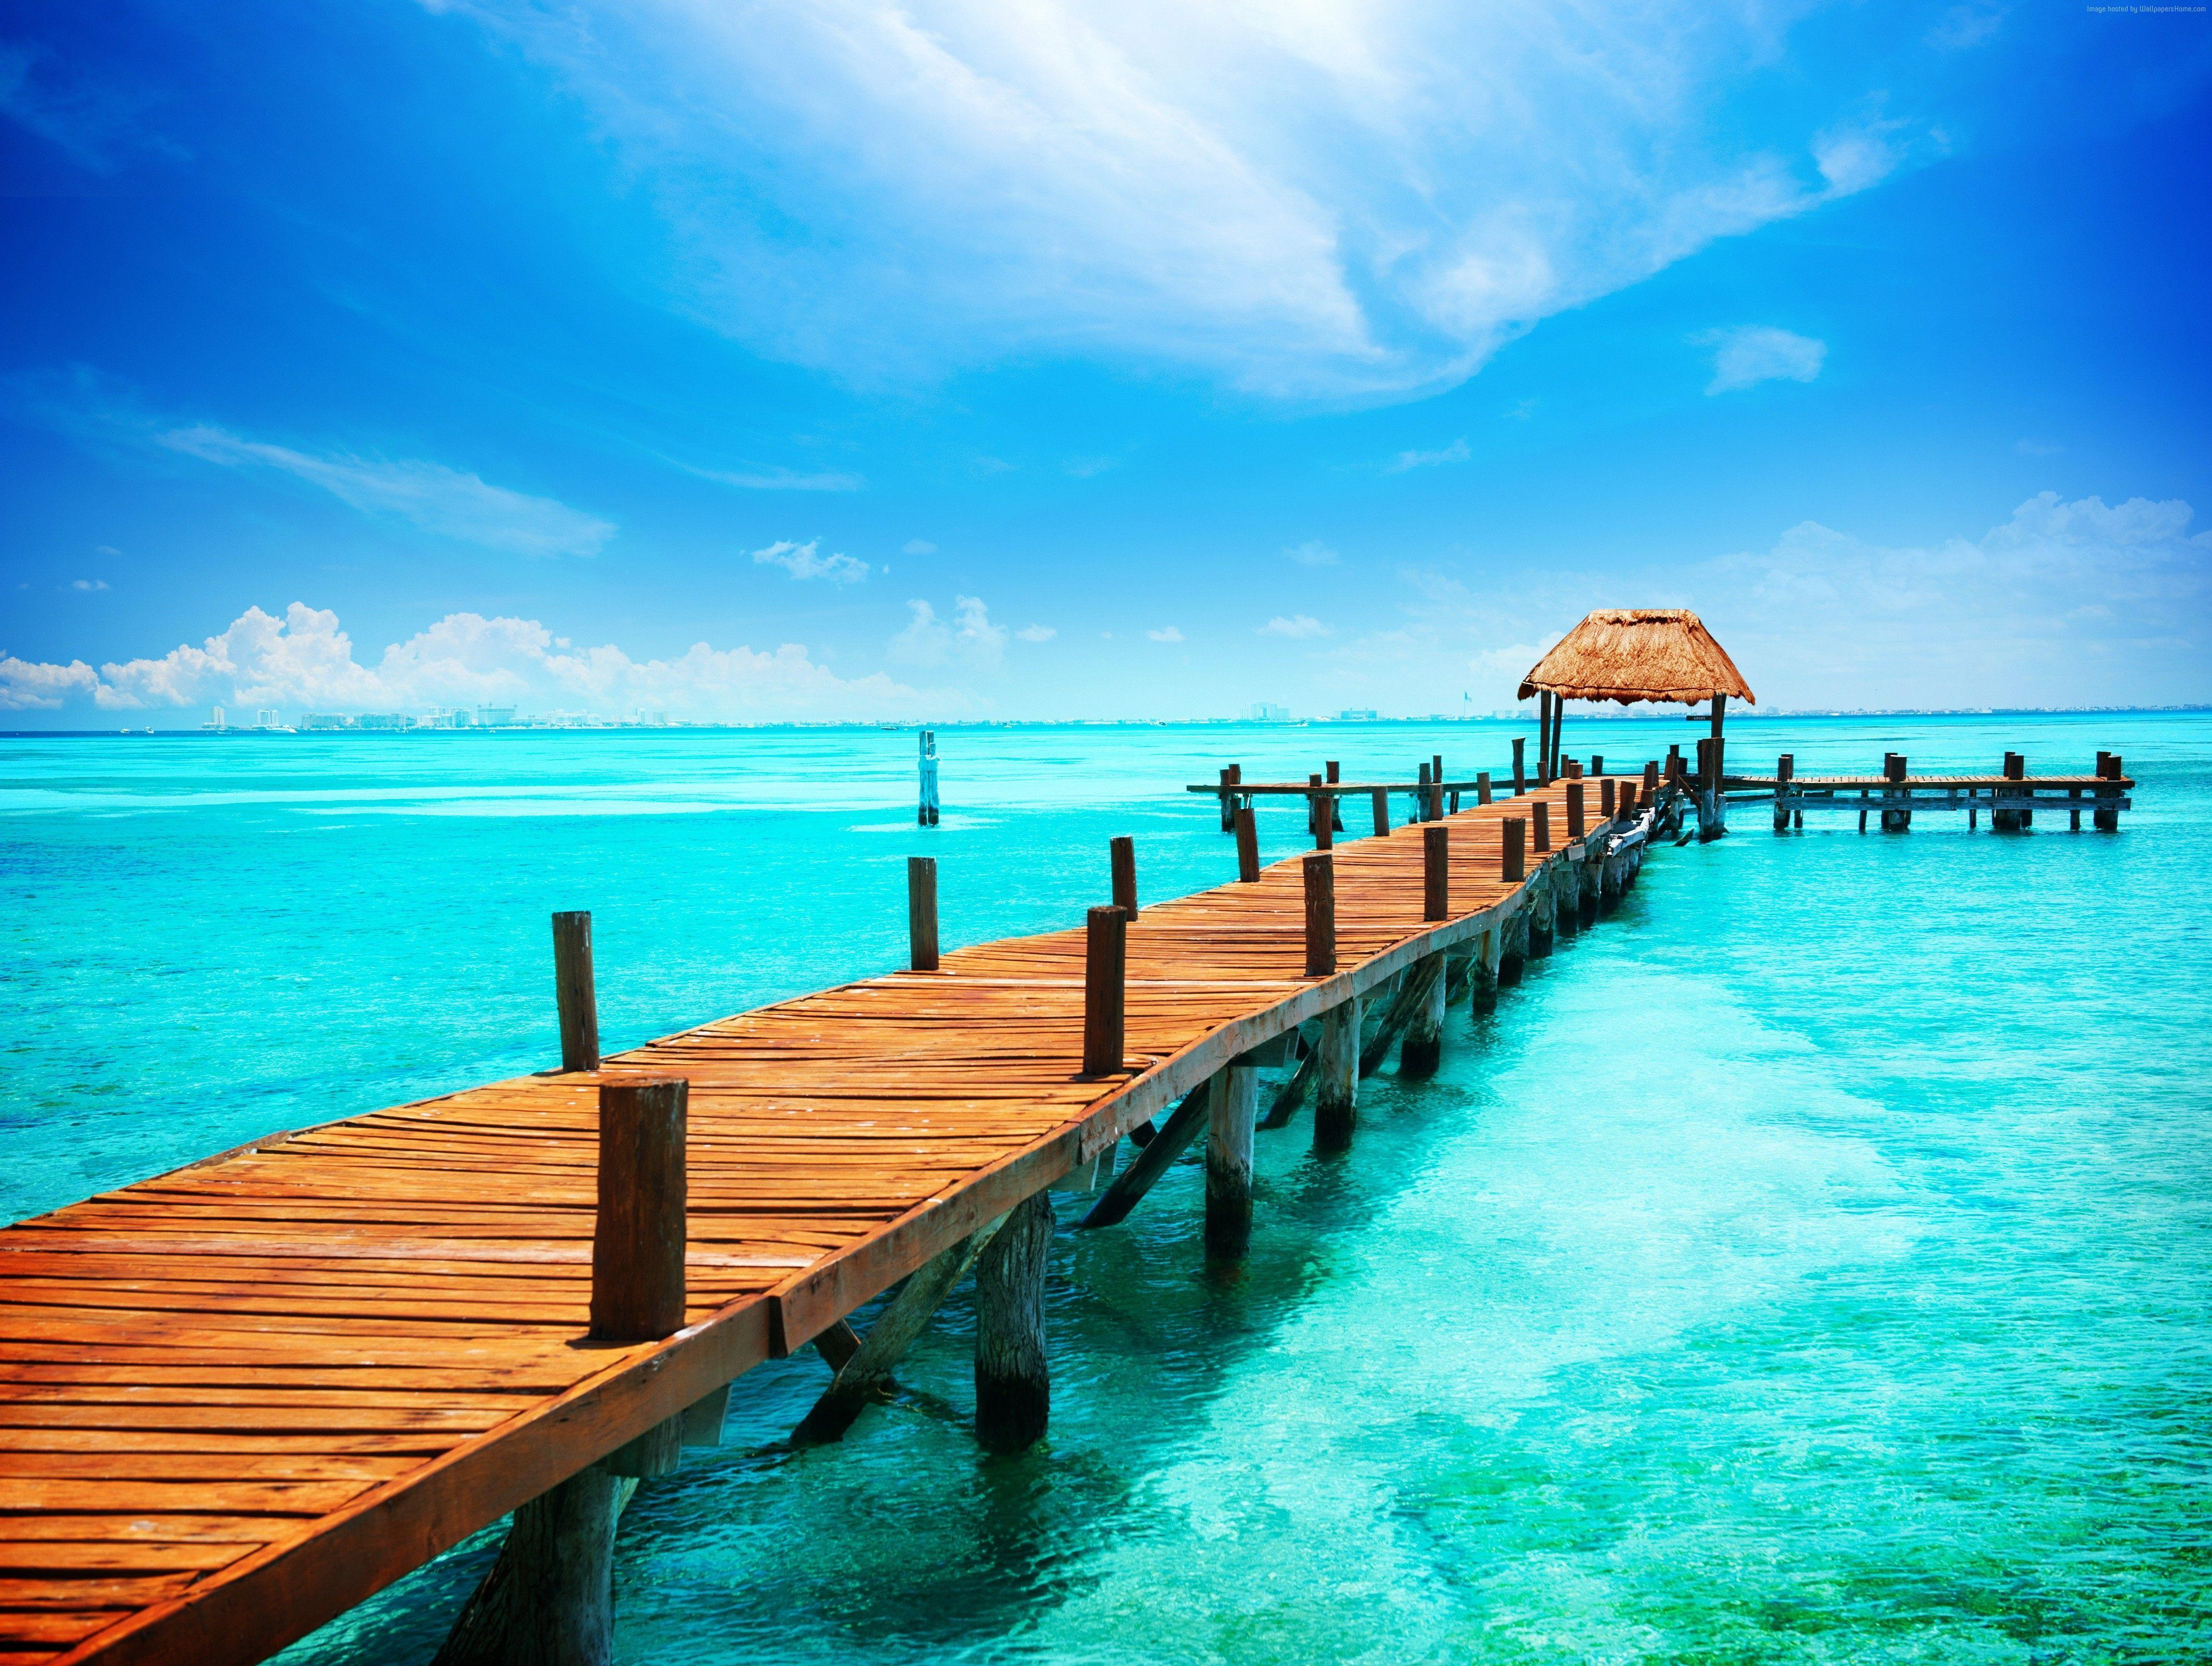 Wallpapers Cancun, Mexico, Best beaches of 2017, tourism, travel